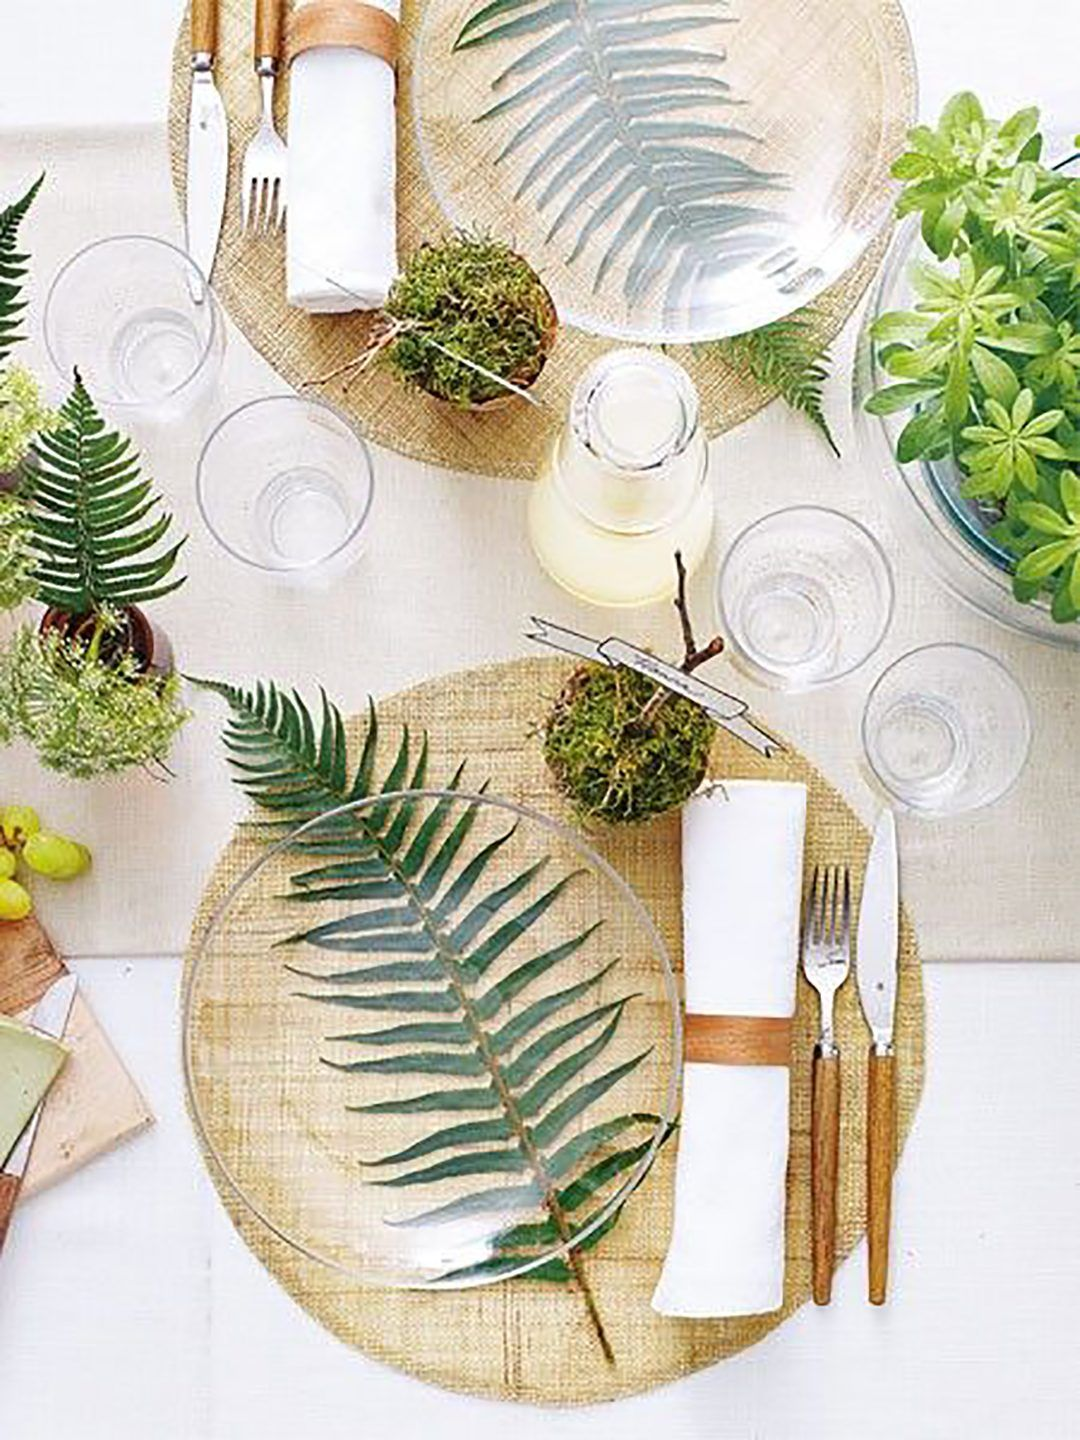 Festival brides sheer delight acrylic wedding decor details and festival brides sheer delight acrylic wedding decor details and inspiration light wood perspex and fern place setting junglespirit Gallery